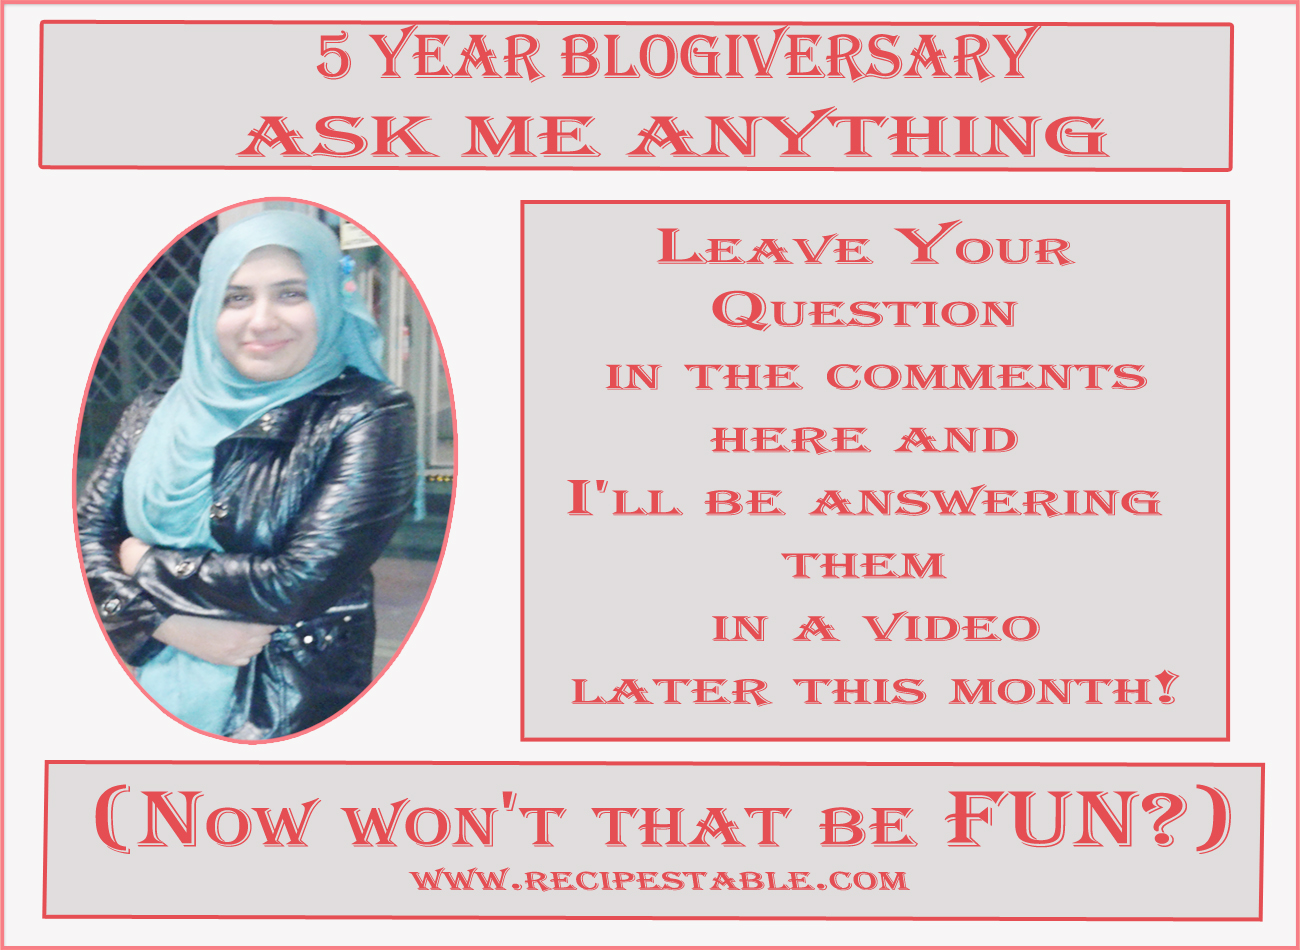 Blogiversary ~ Ask me Anything